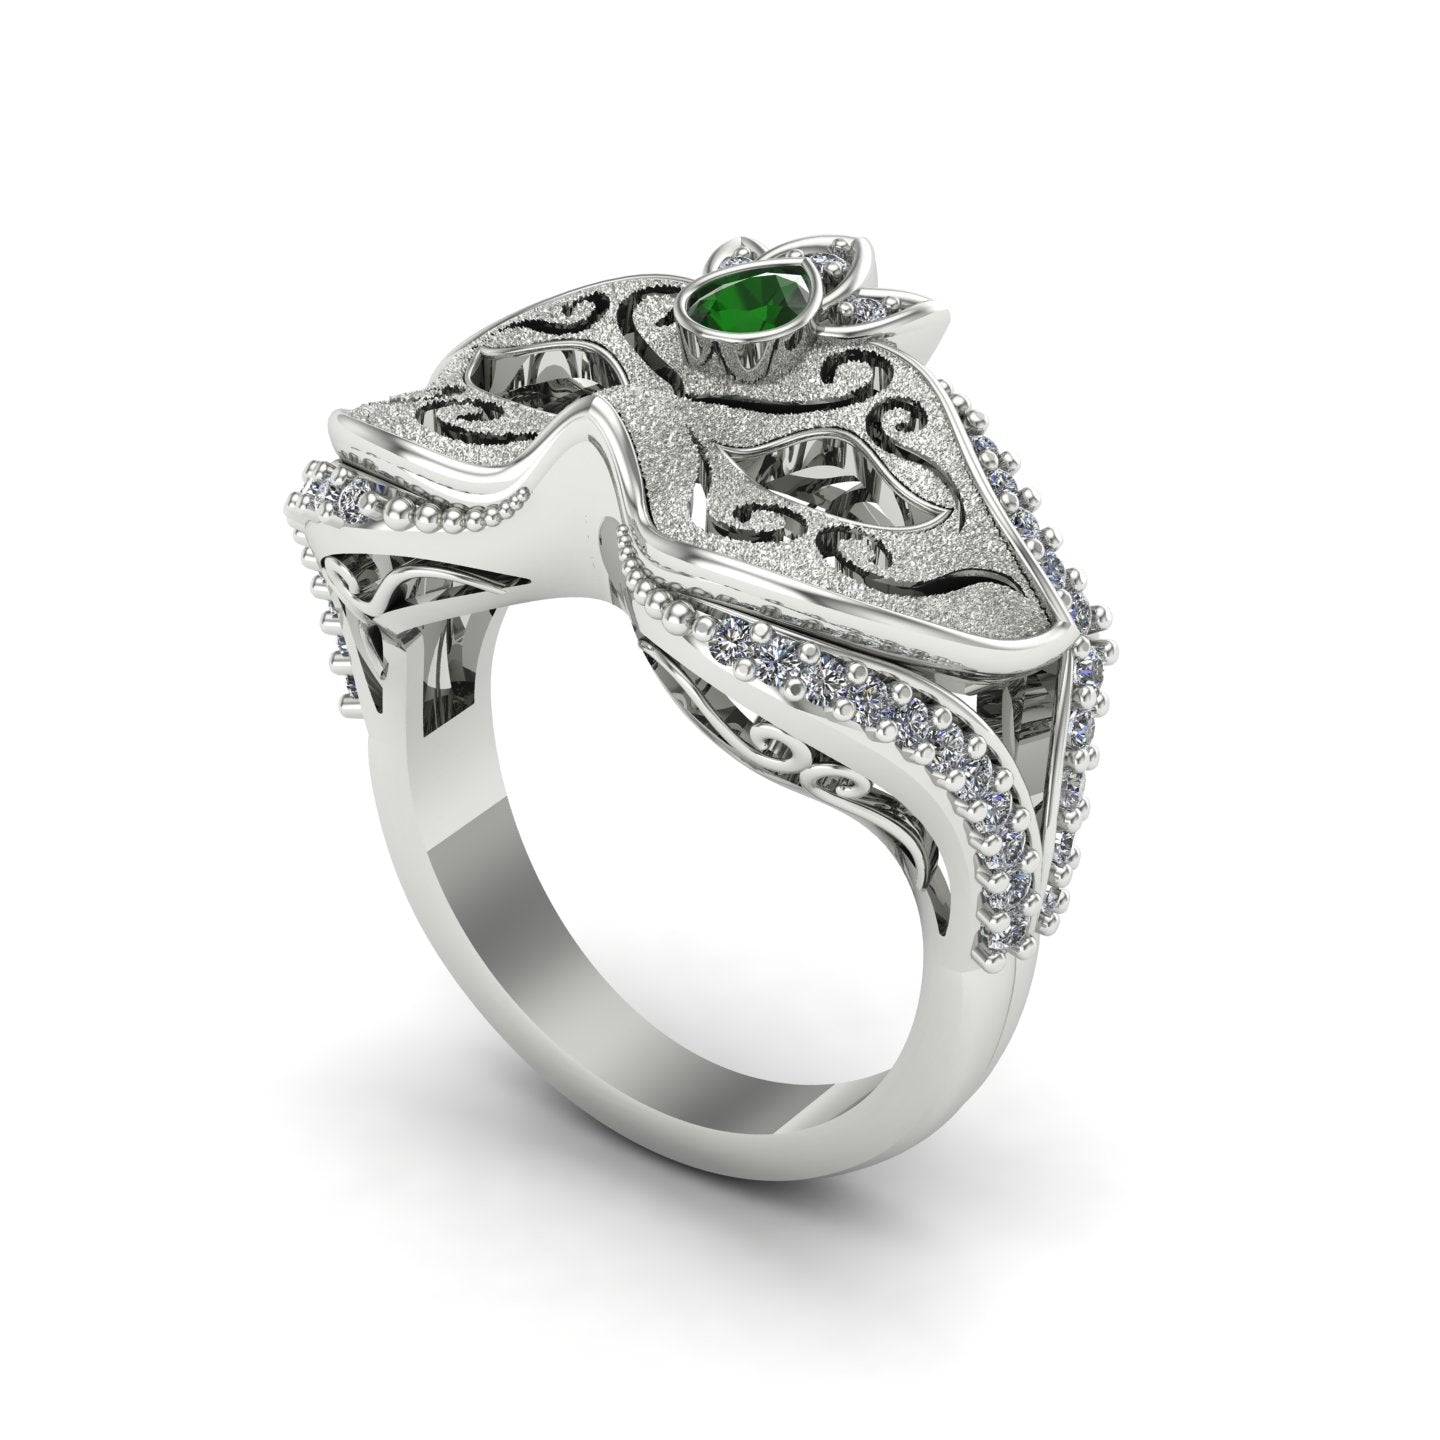 Tsavorite garnet and diamond carnival mask ring in 14k white gold